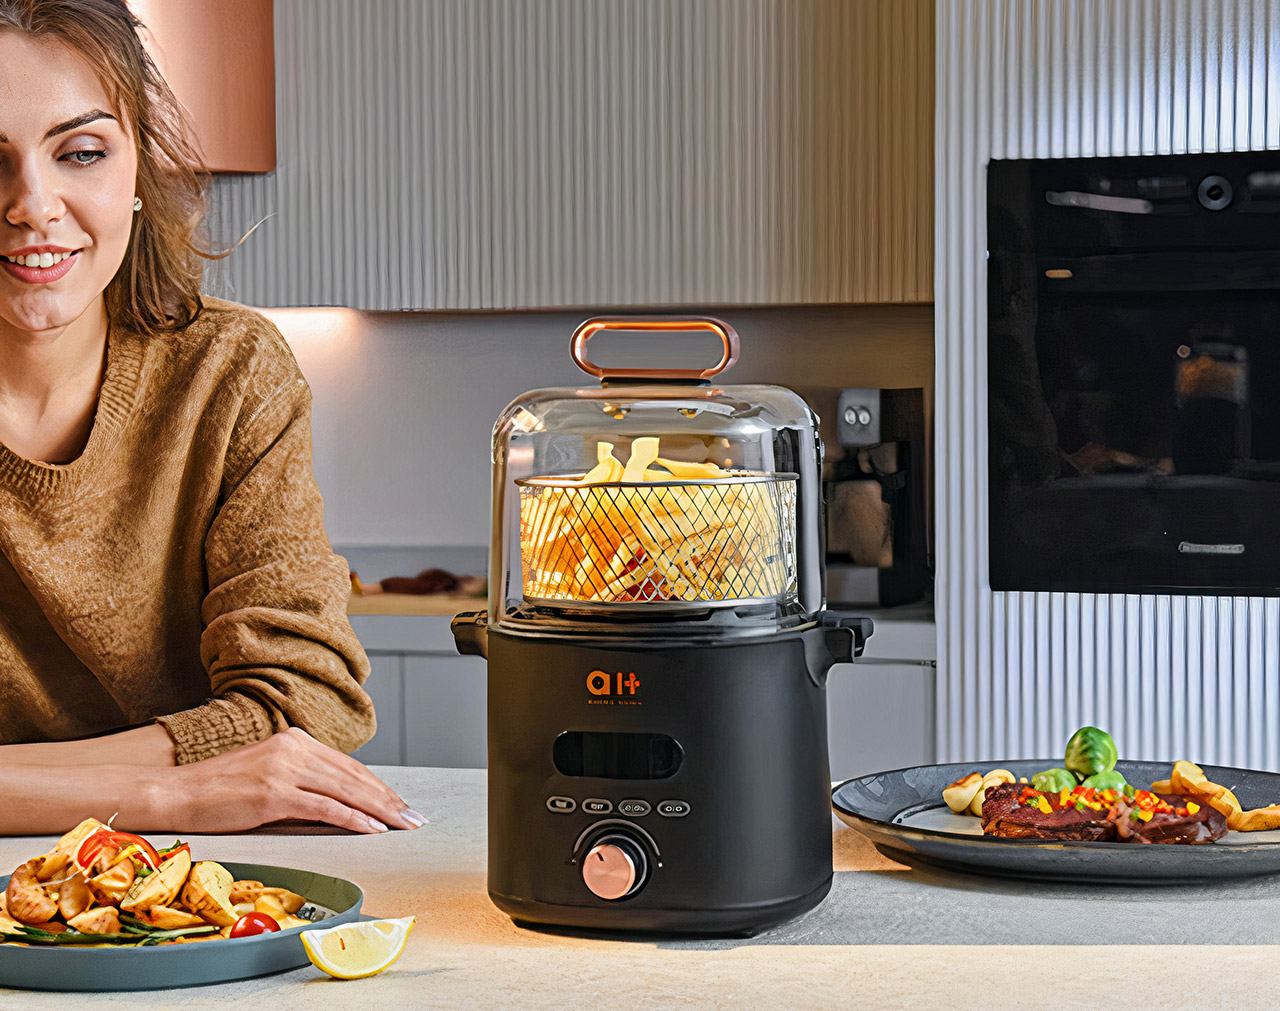 AUKEY CrispX Air Fryer Grill